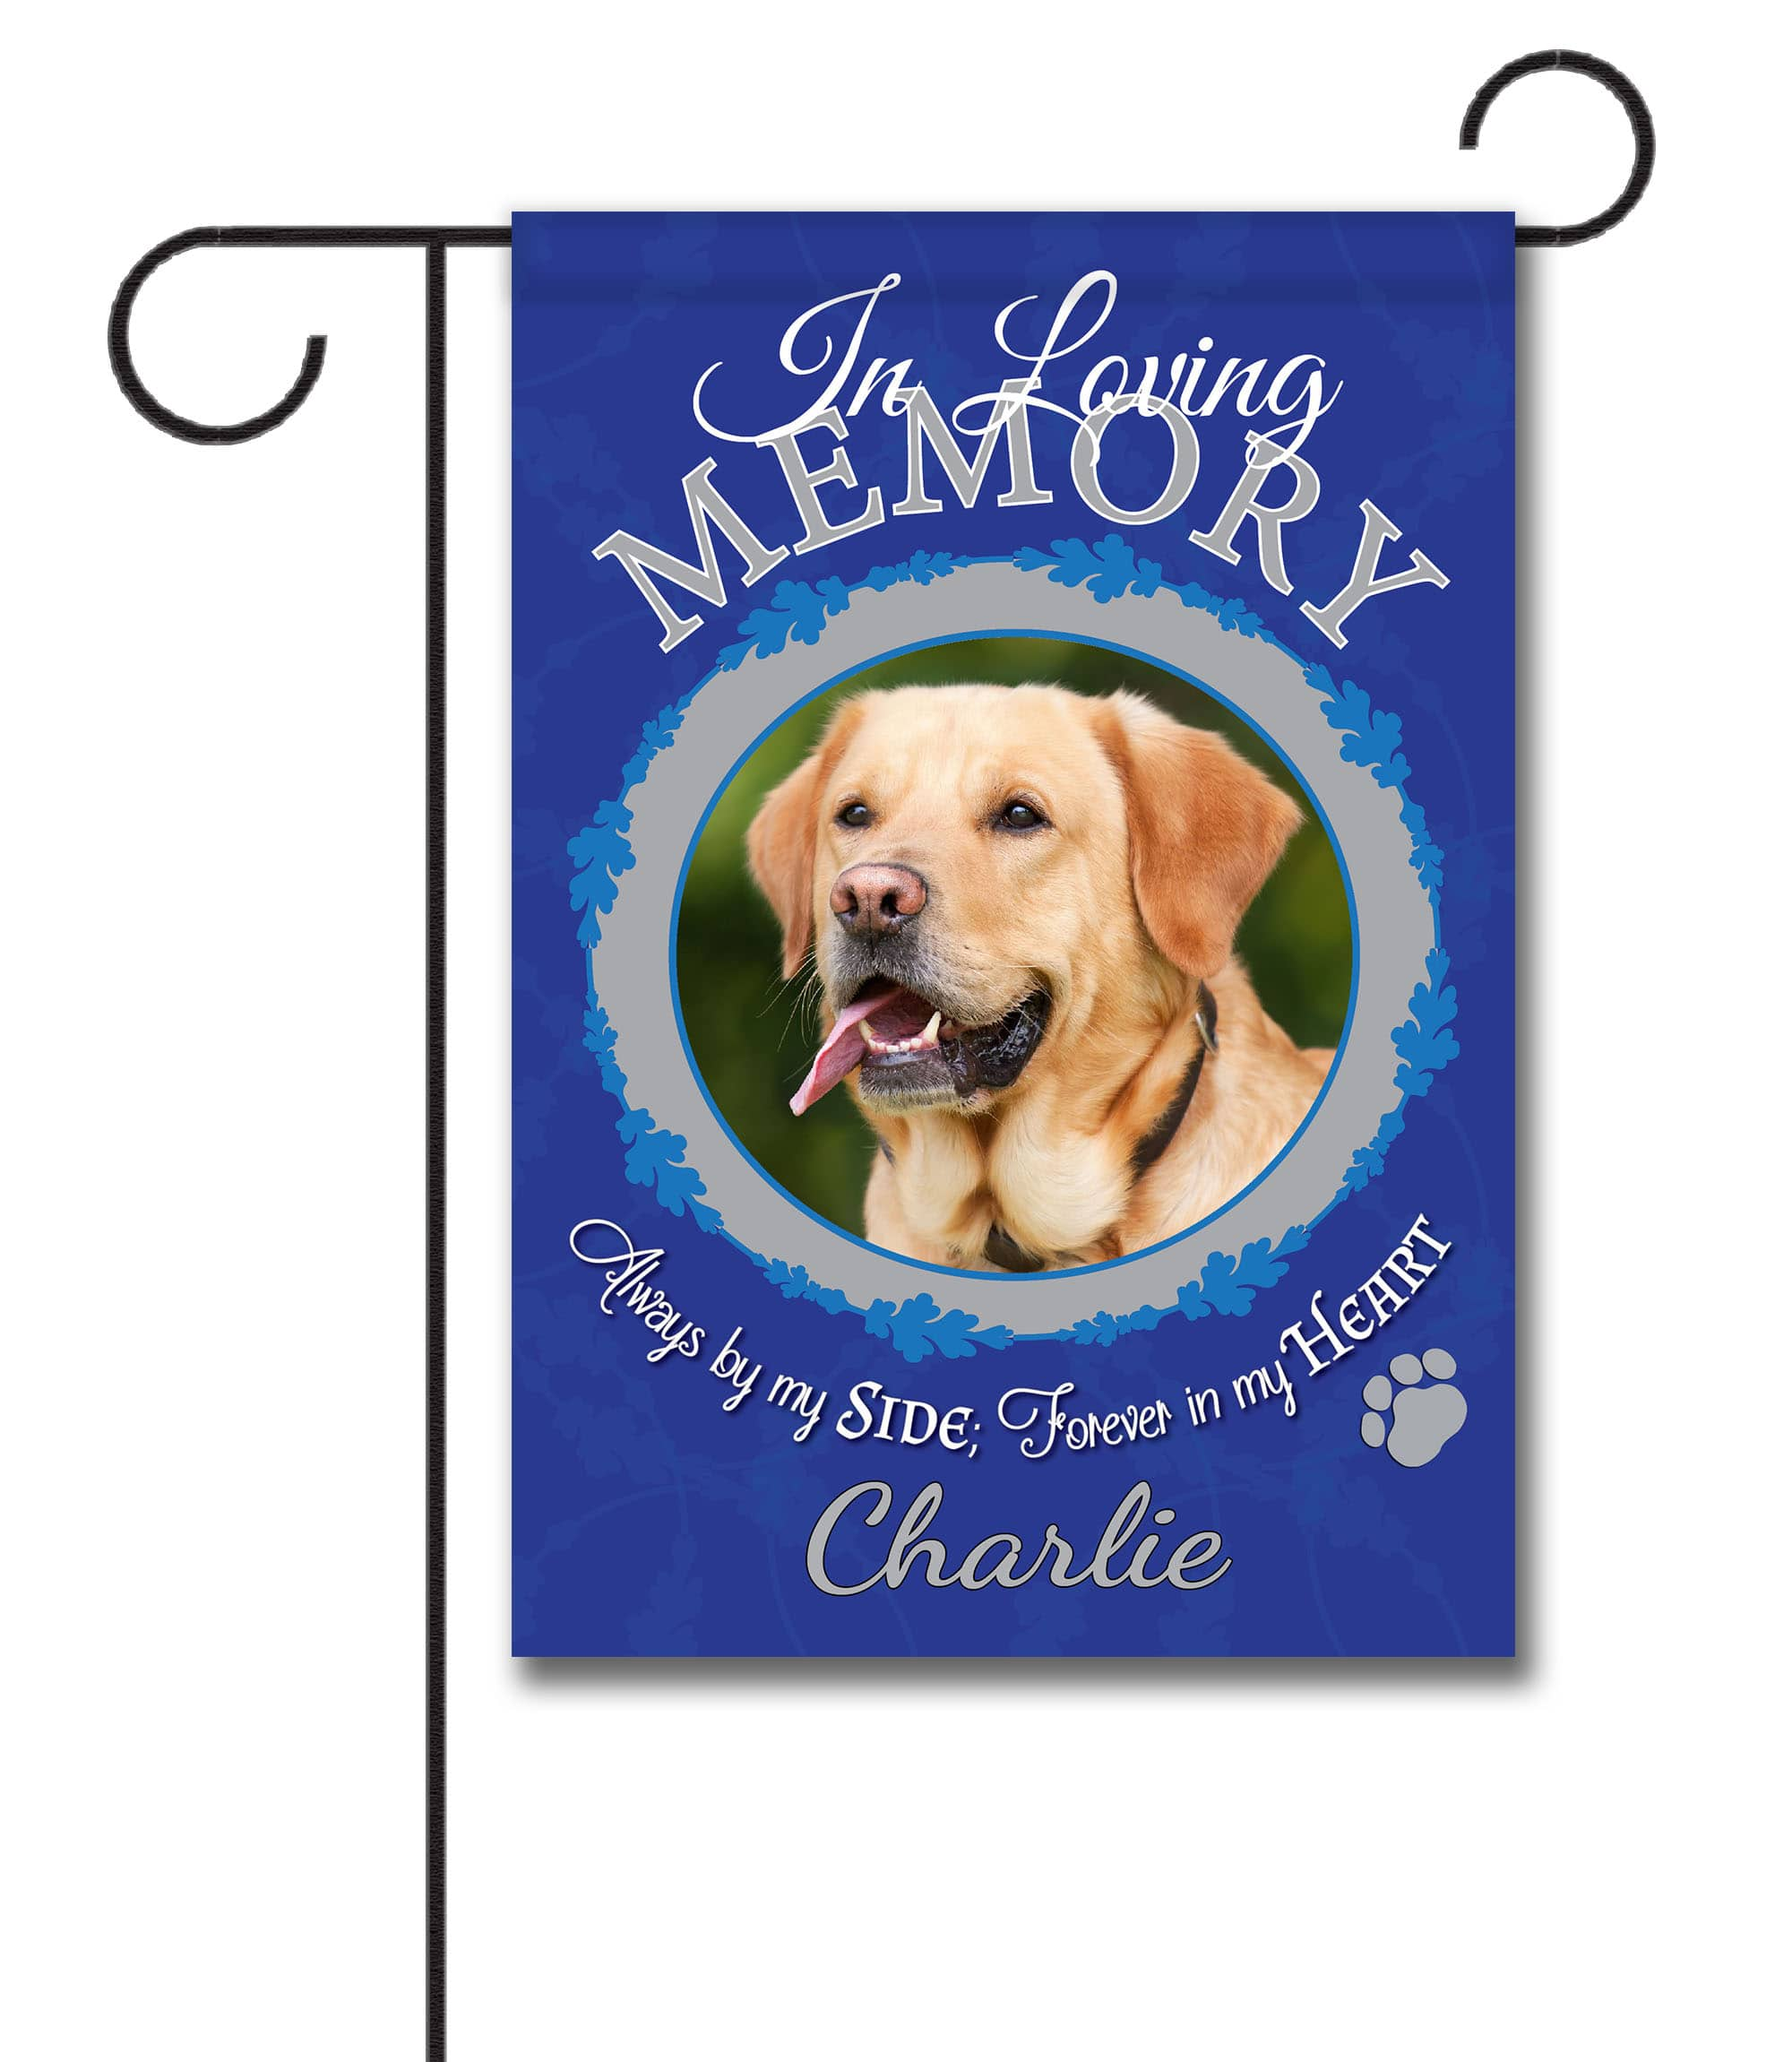 Delicieux In Loving Memory   Pet   Photo Garden Flag   12.5u0027u0027 ...